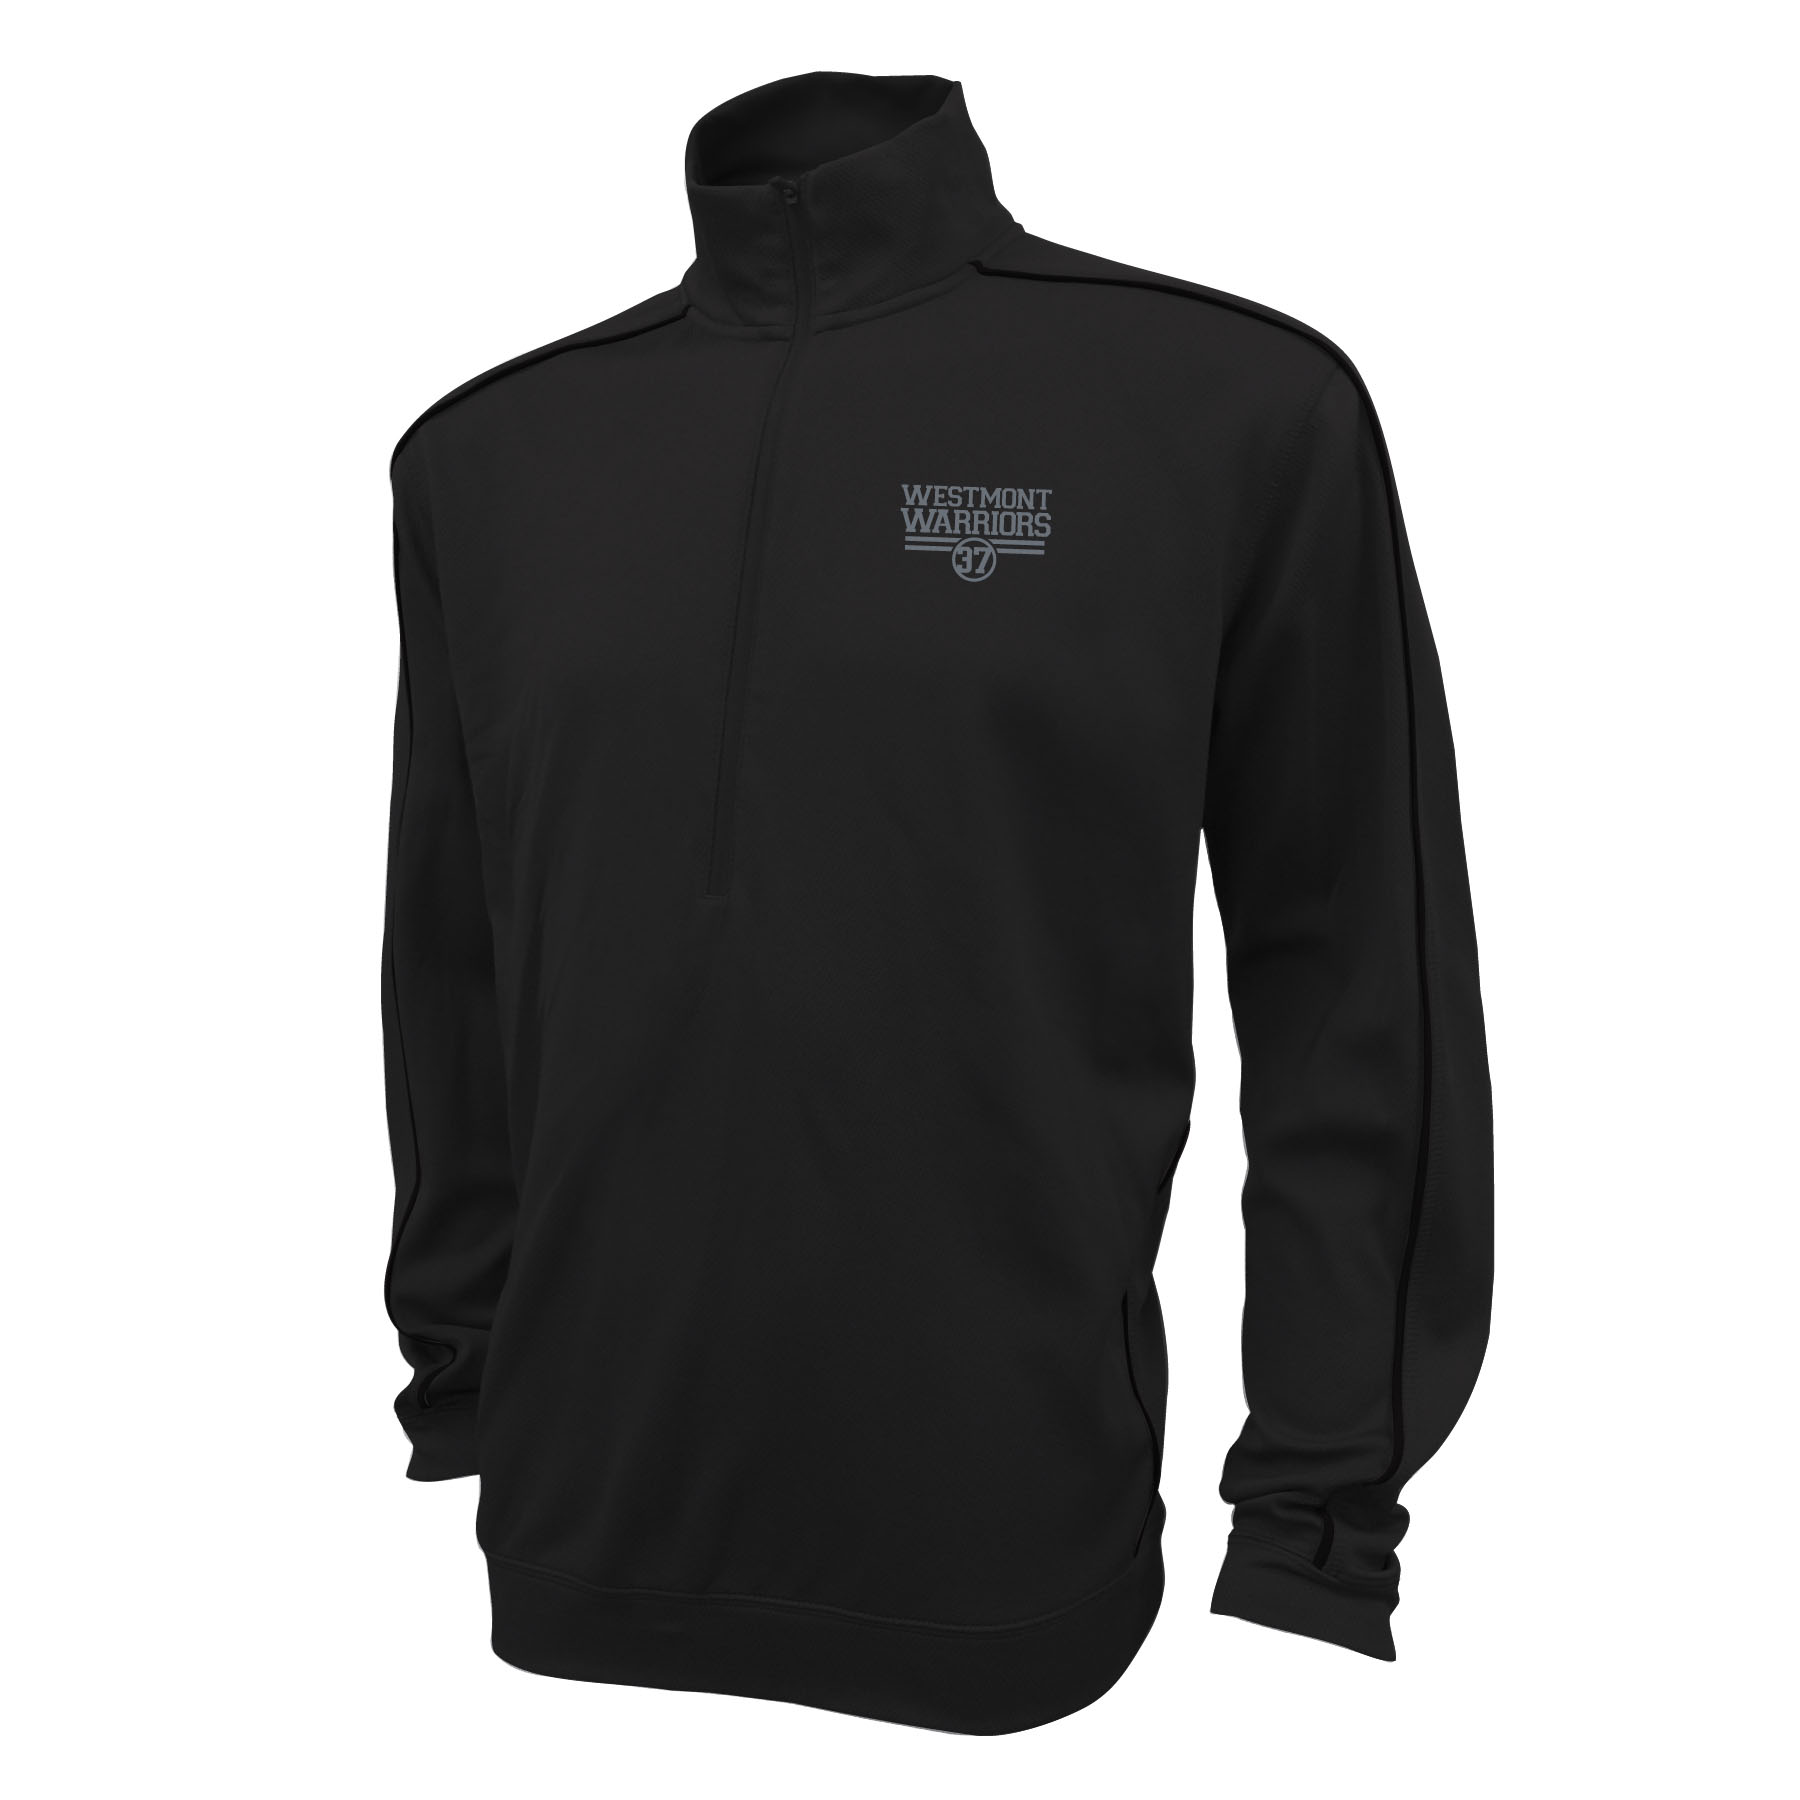 Image for the Ouray Performance Westmont Warrior 37 1/4-zip product